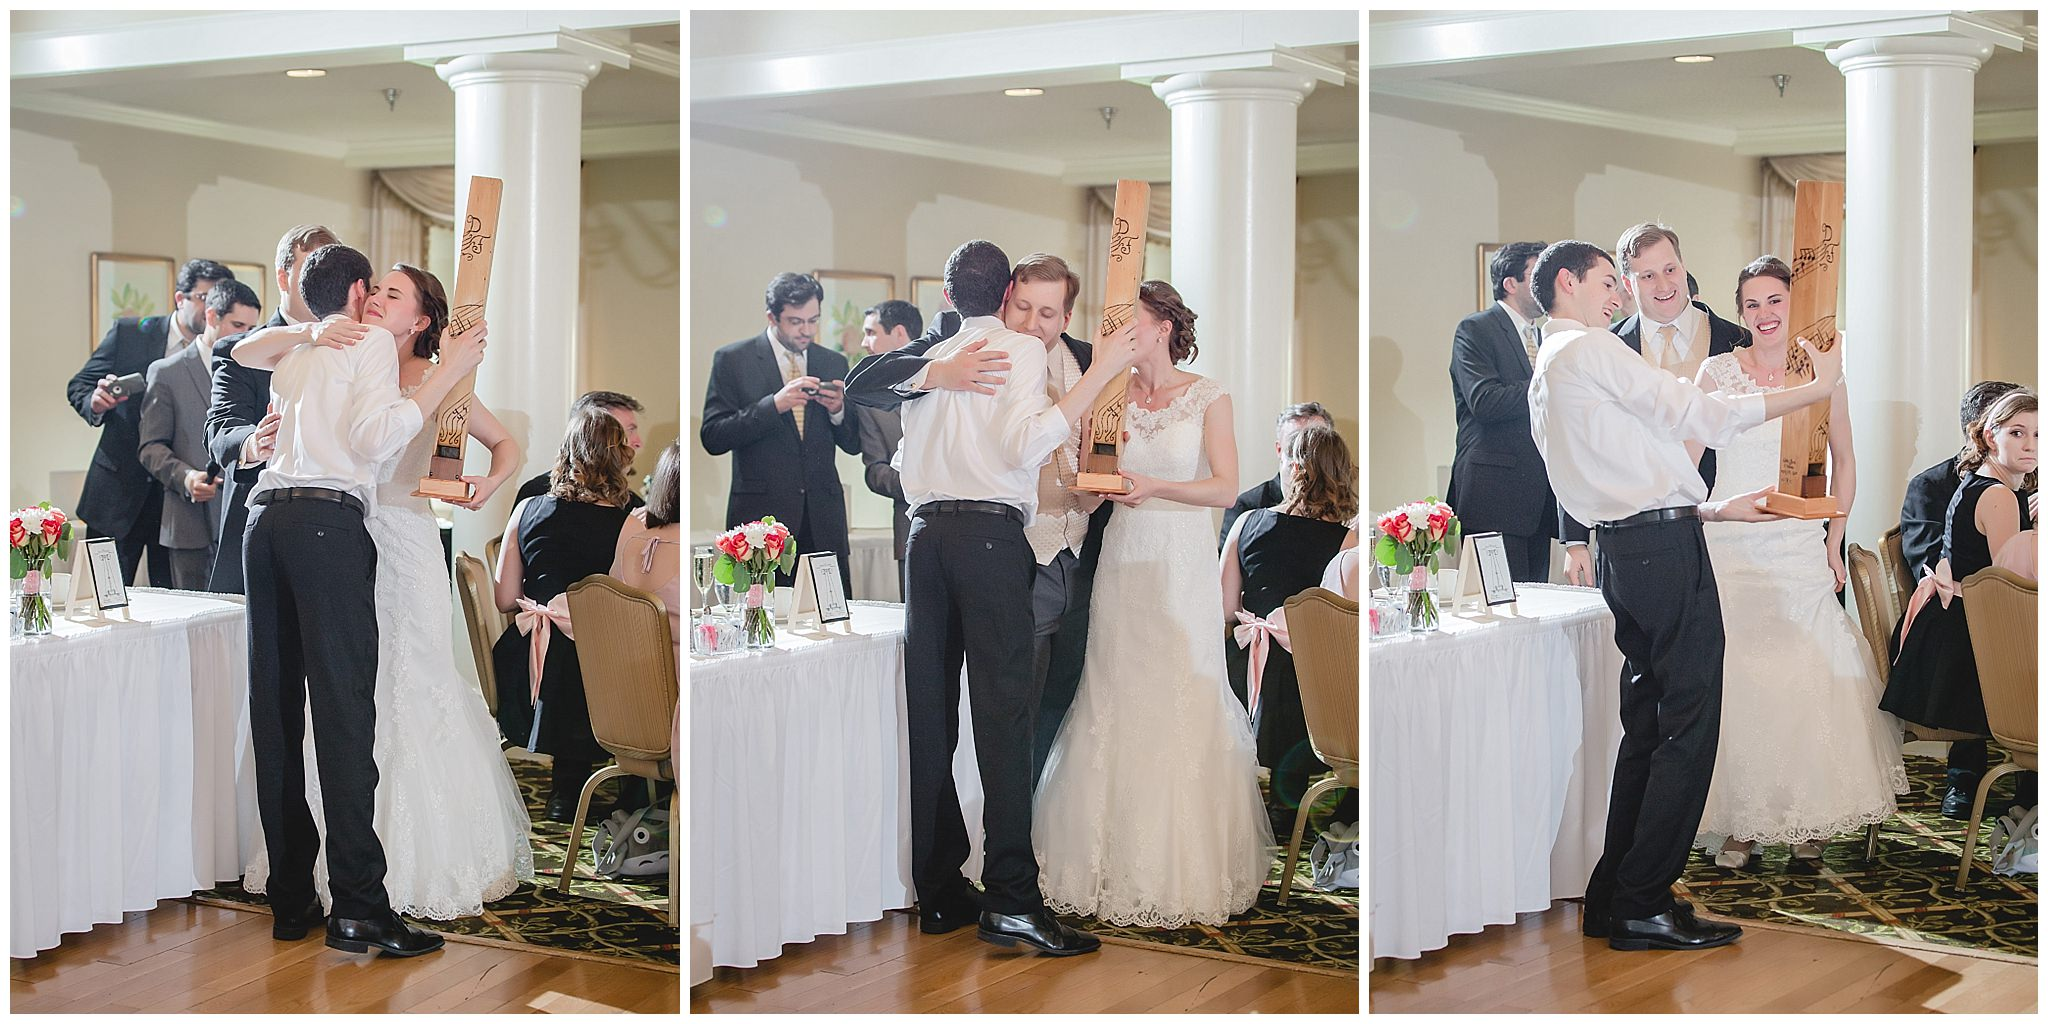 Bride & groom present gift to friend at Shannopin Country Club reception